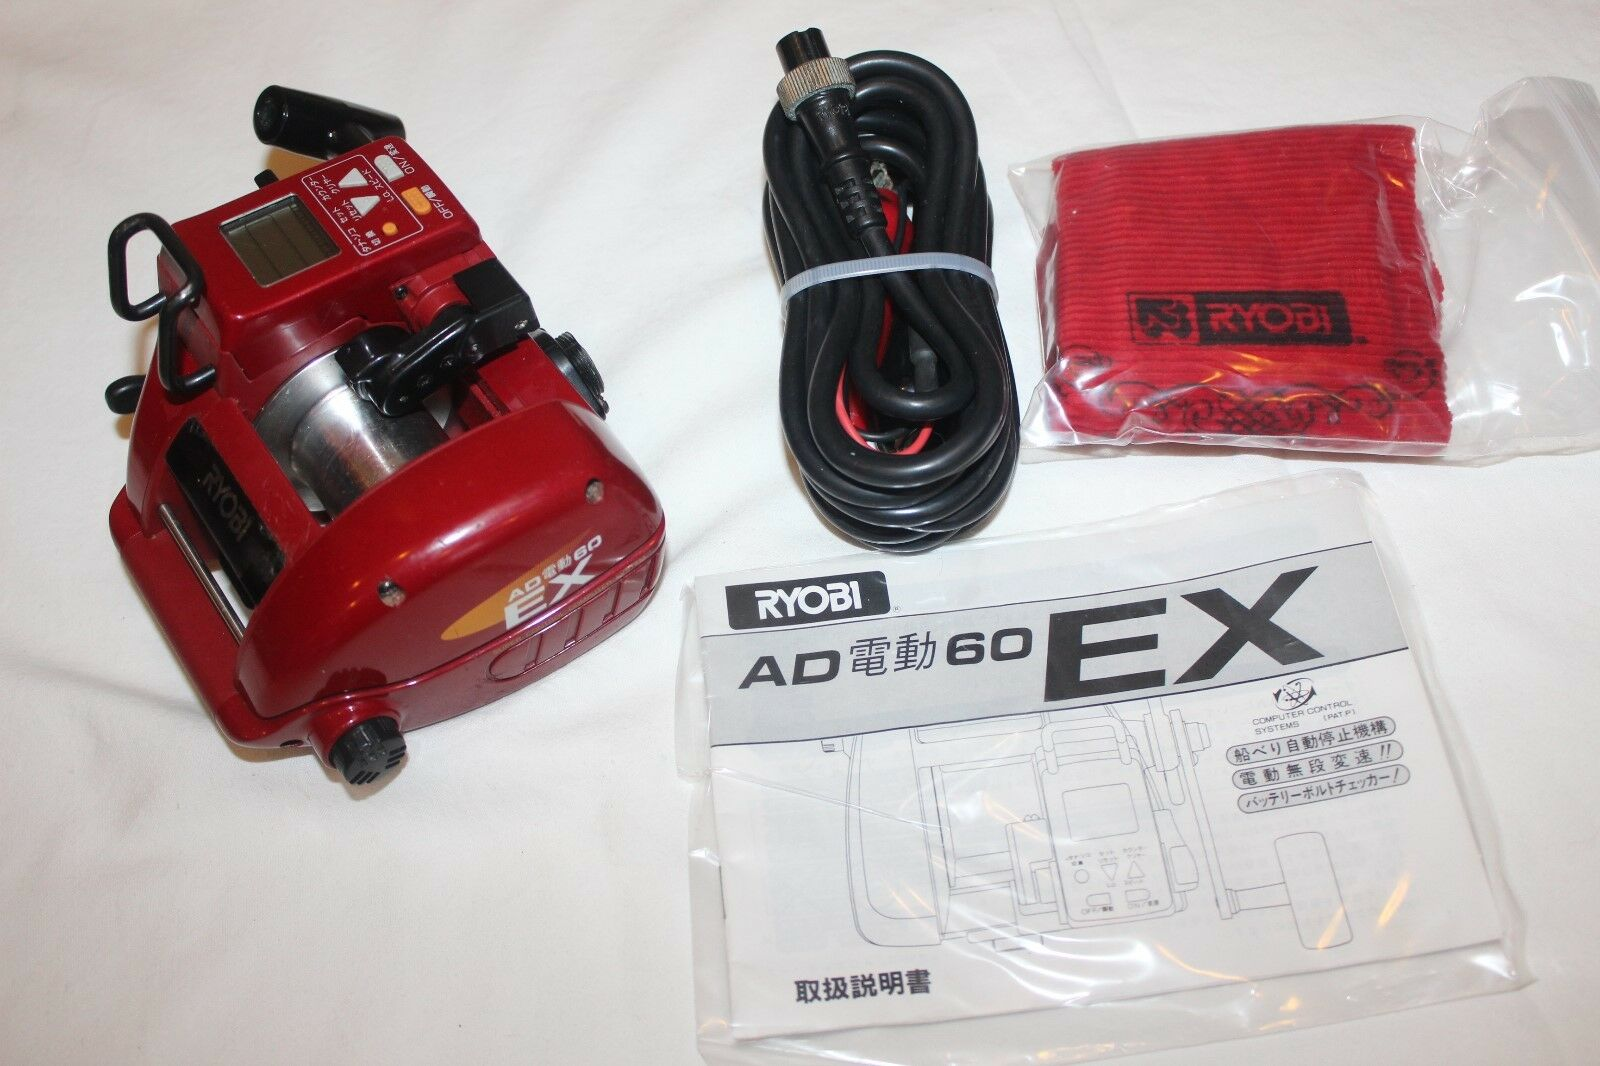 RYOBI ADVENTURE  AD 60 EX-ELEKTRgoldLLE-MADE IN JAPAN-Nr-985  we take customers as our god